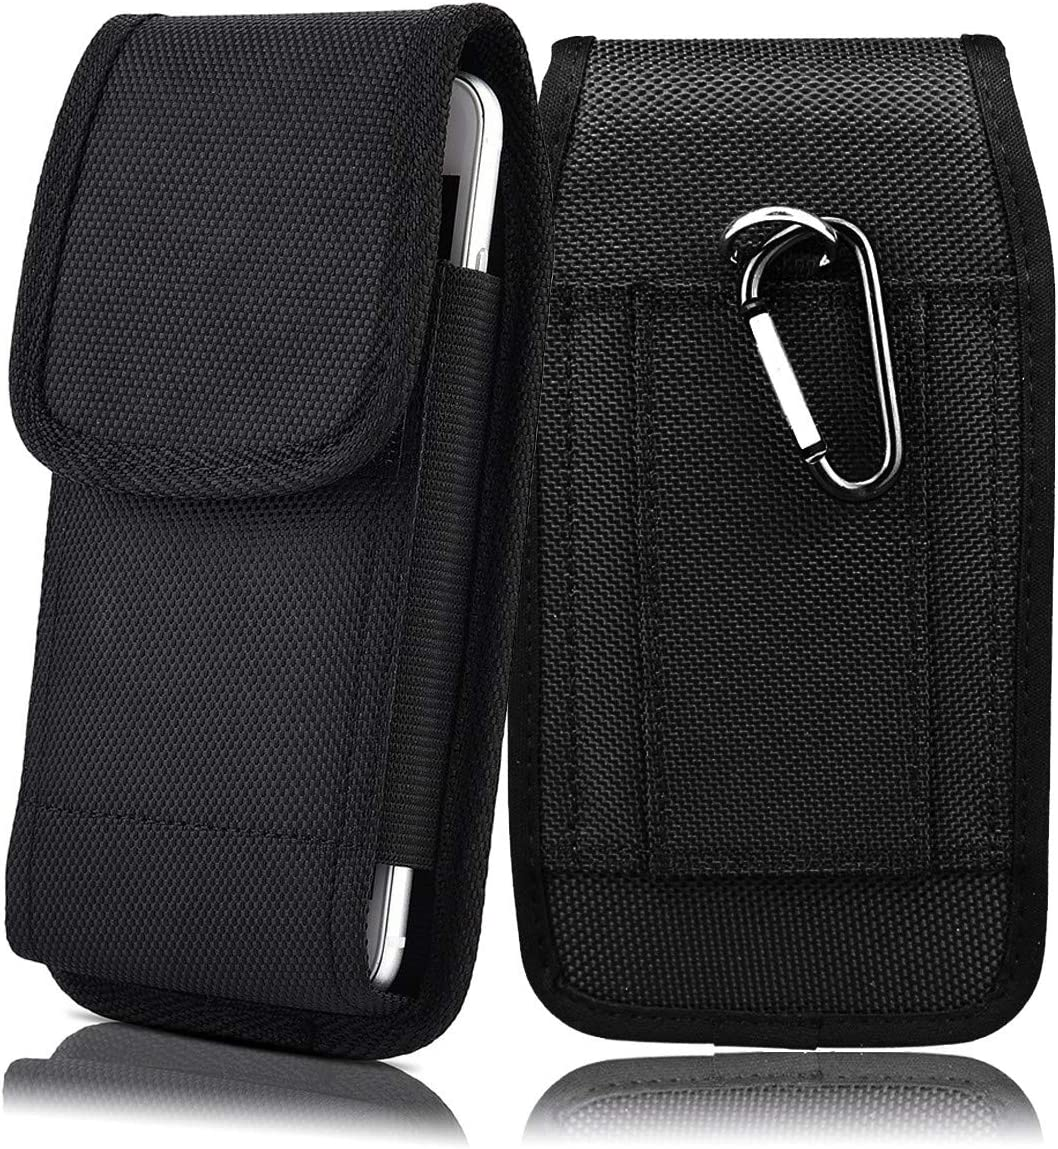 APLLEN Phone Pouch Belt Clip Case for Motorola Moto G Fast/Moto G8 /One Fusion+ / One Fusion Plus Case Nylon Holster Loop Waist Bag Carrying Cellphone Cover